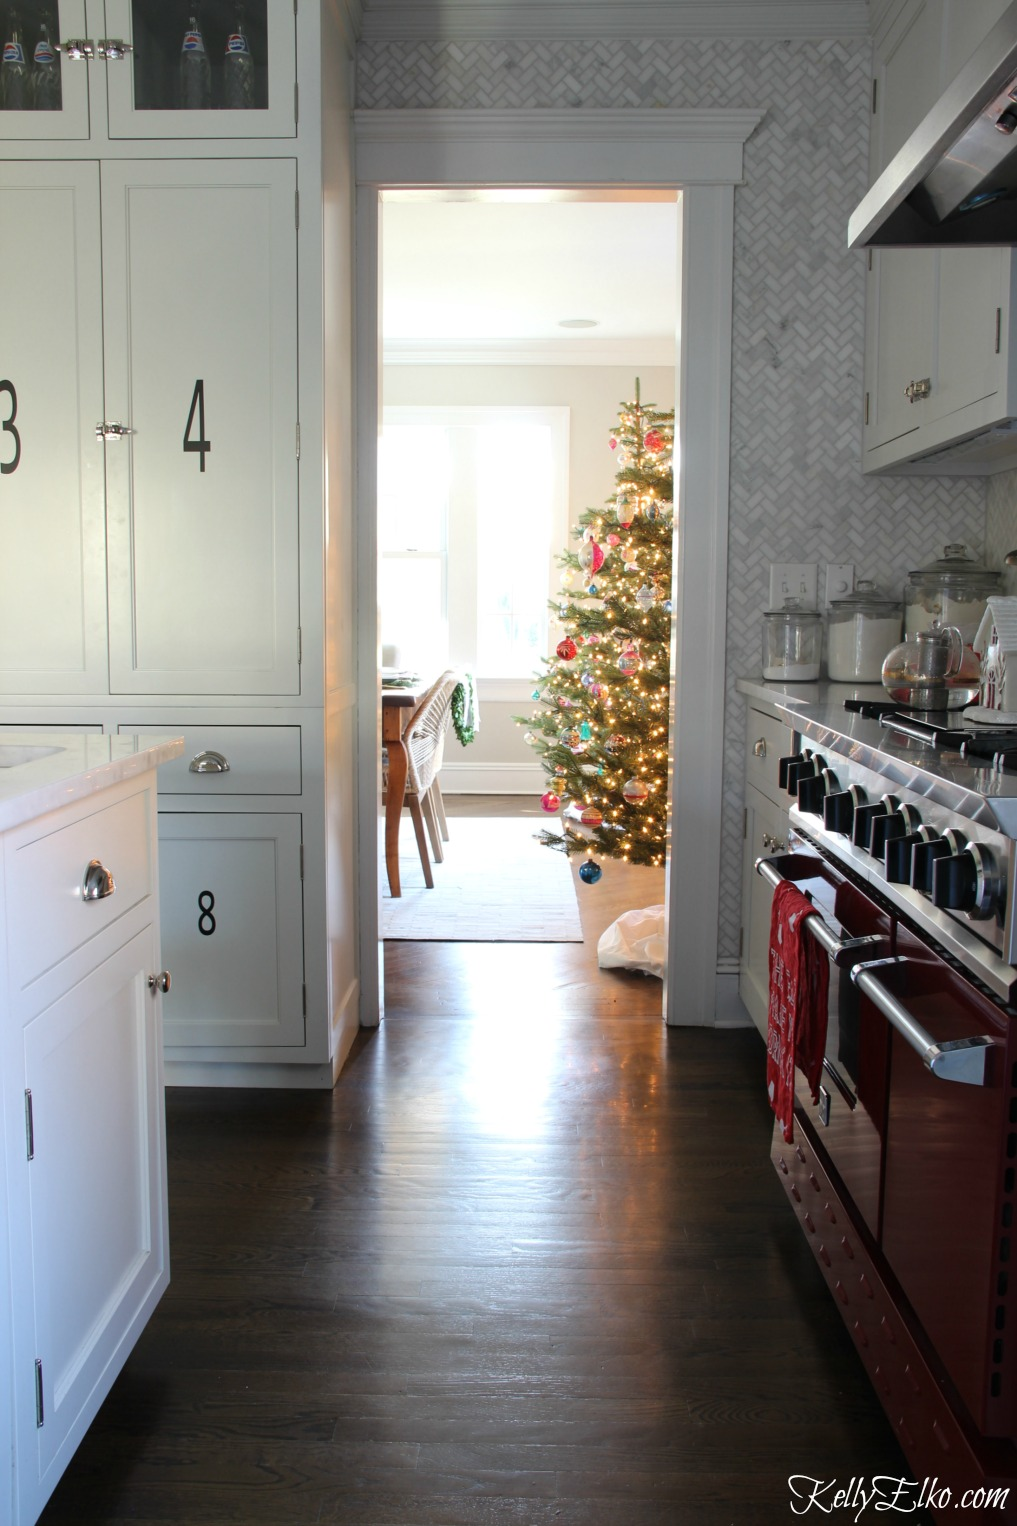 Christmas Kitchen - love the red stove kellyelko.com